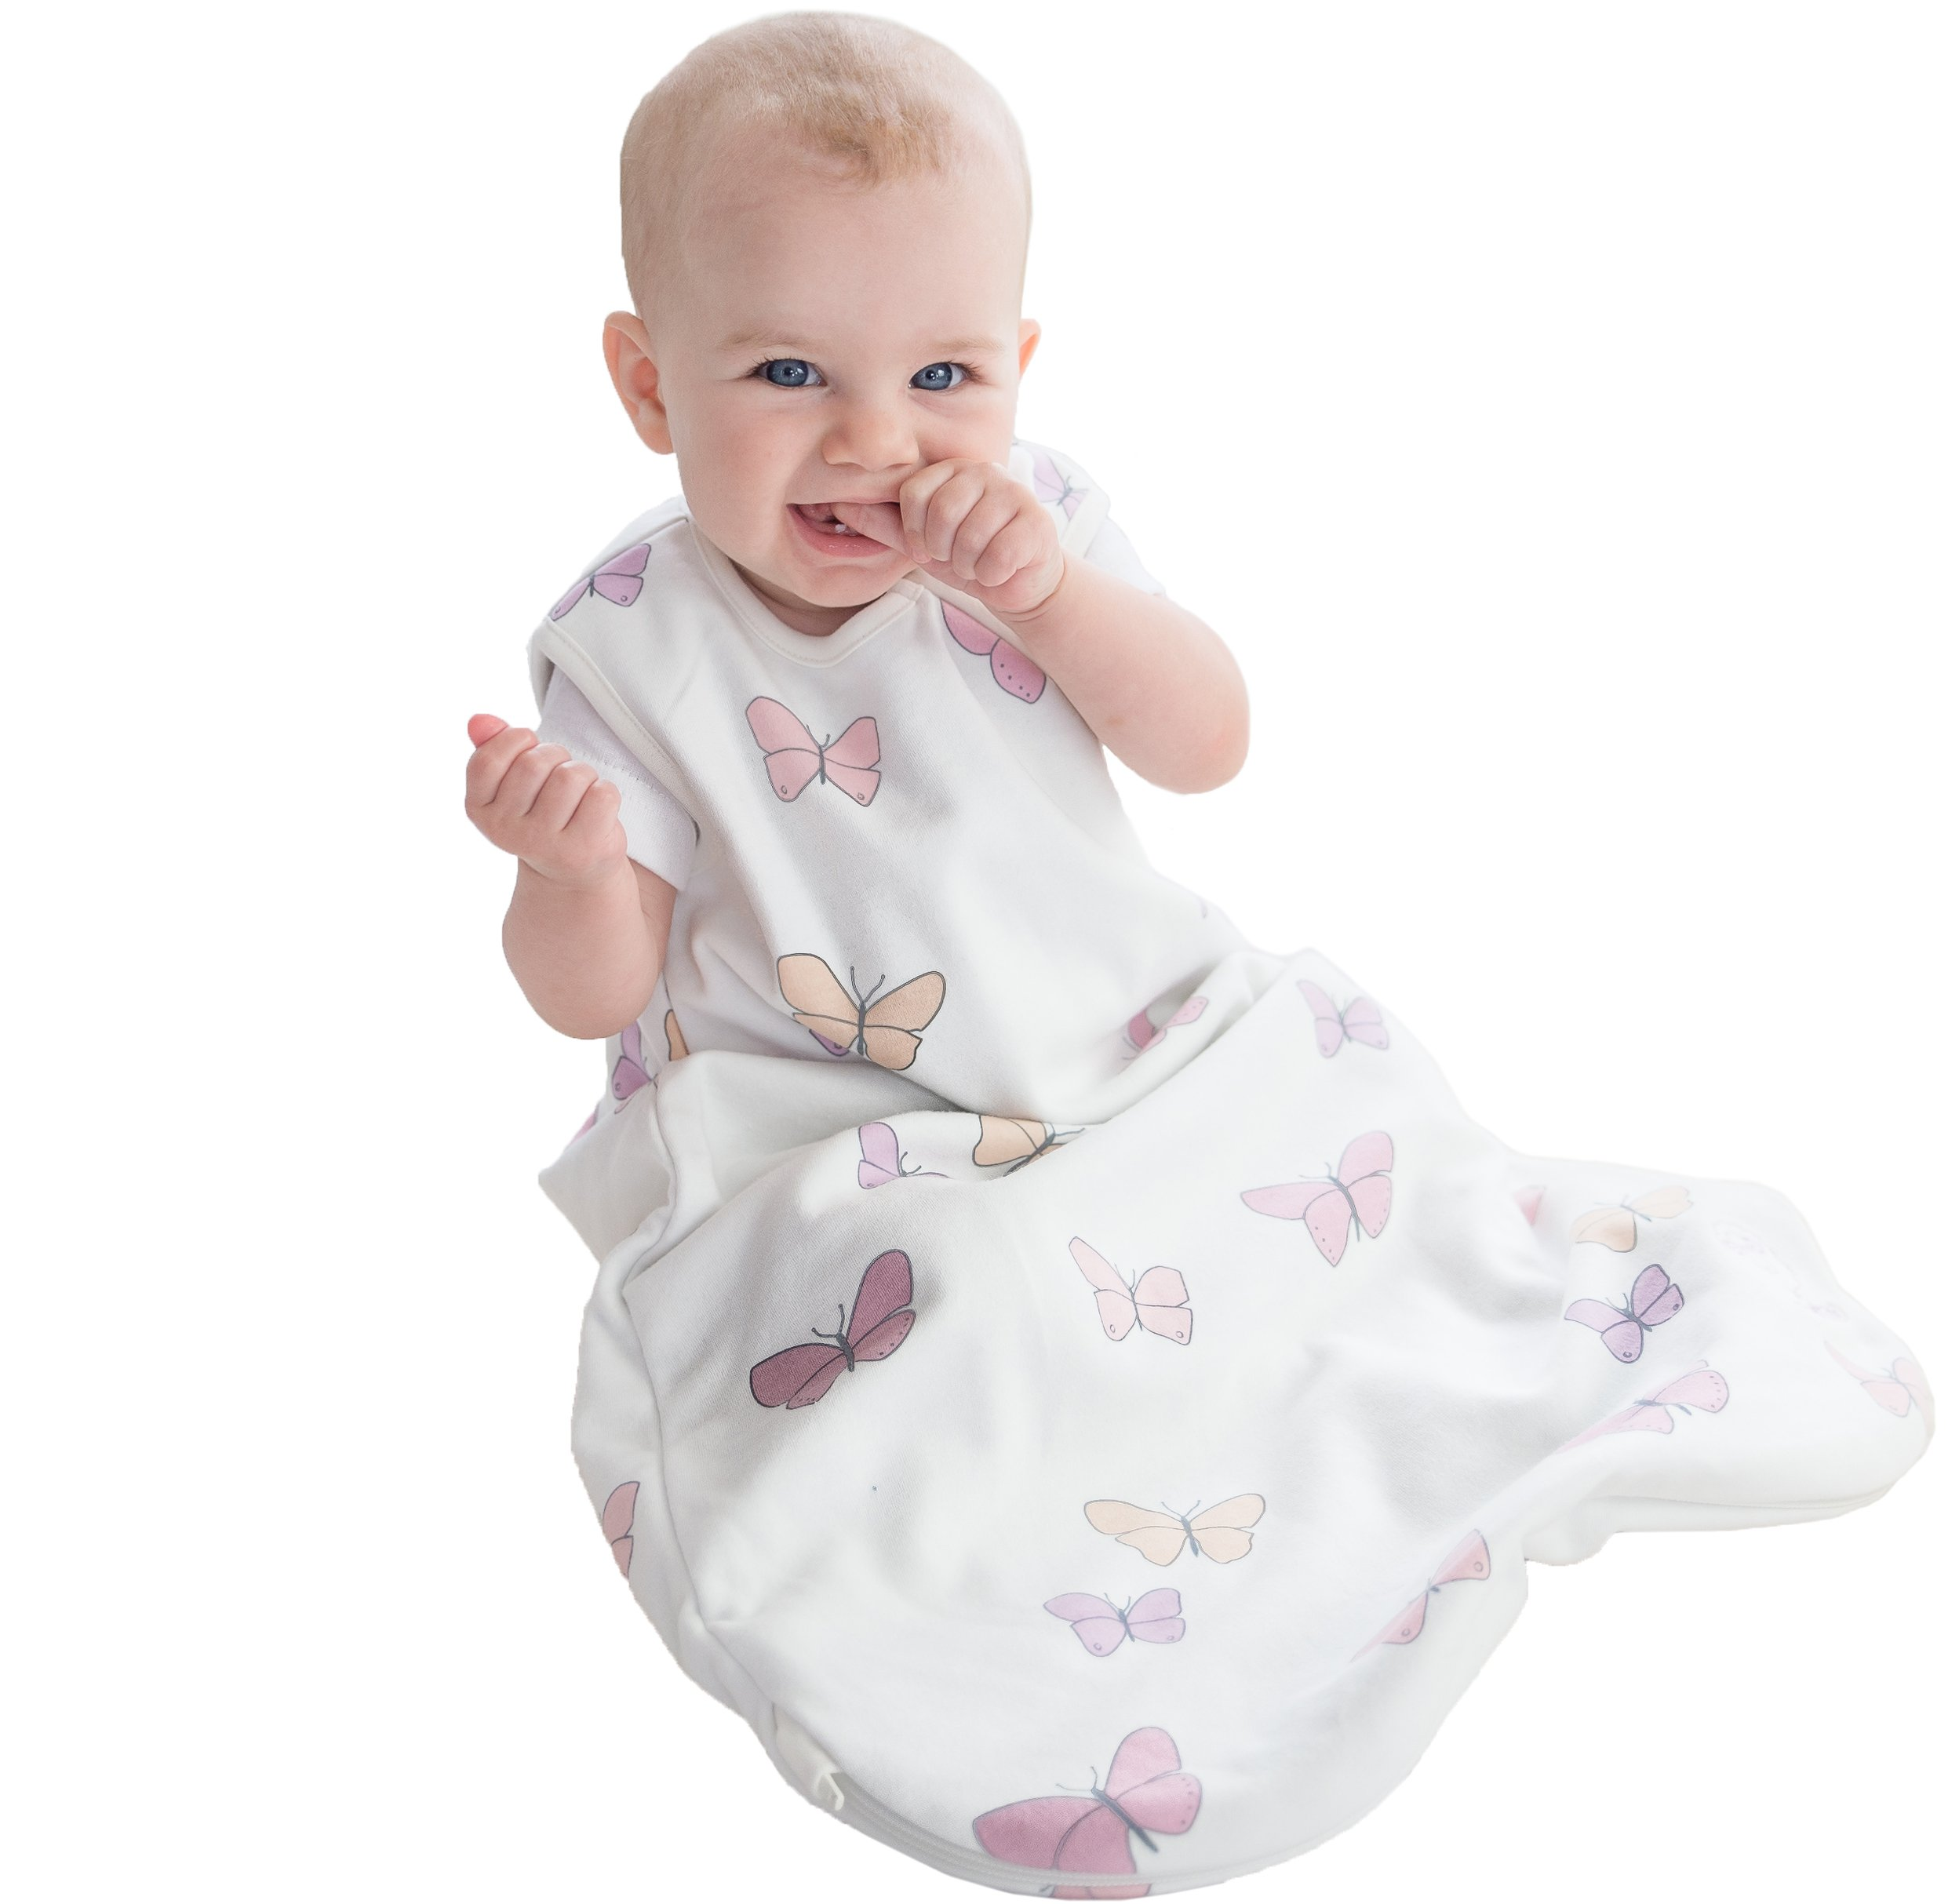 Woolino 4 Season Basic Merino Wool Baby Sleeping Bag, 0-6 Months, Butterfly